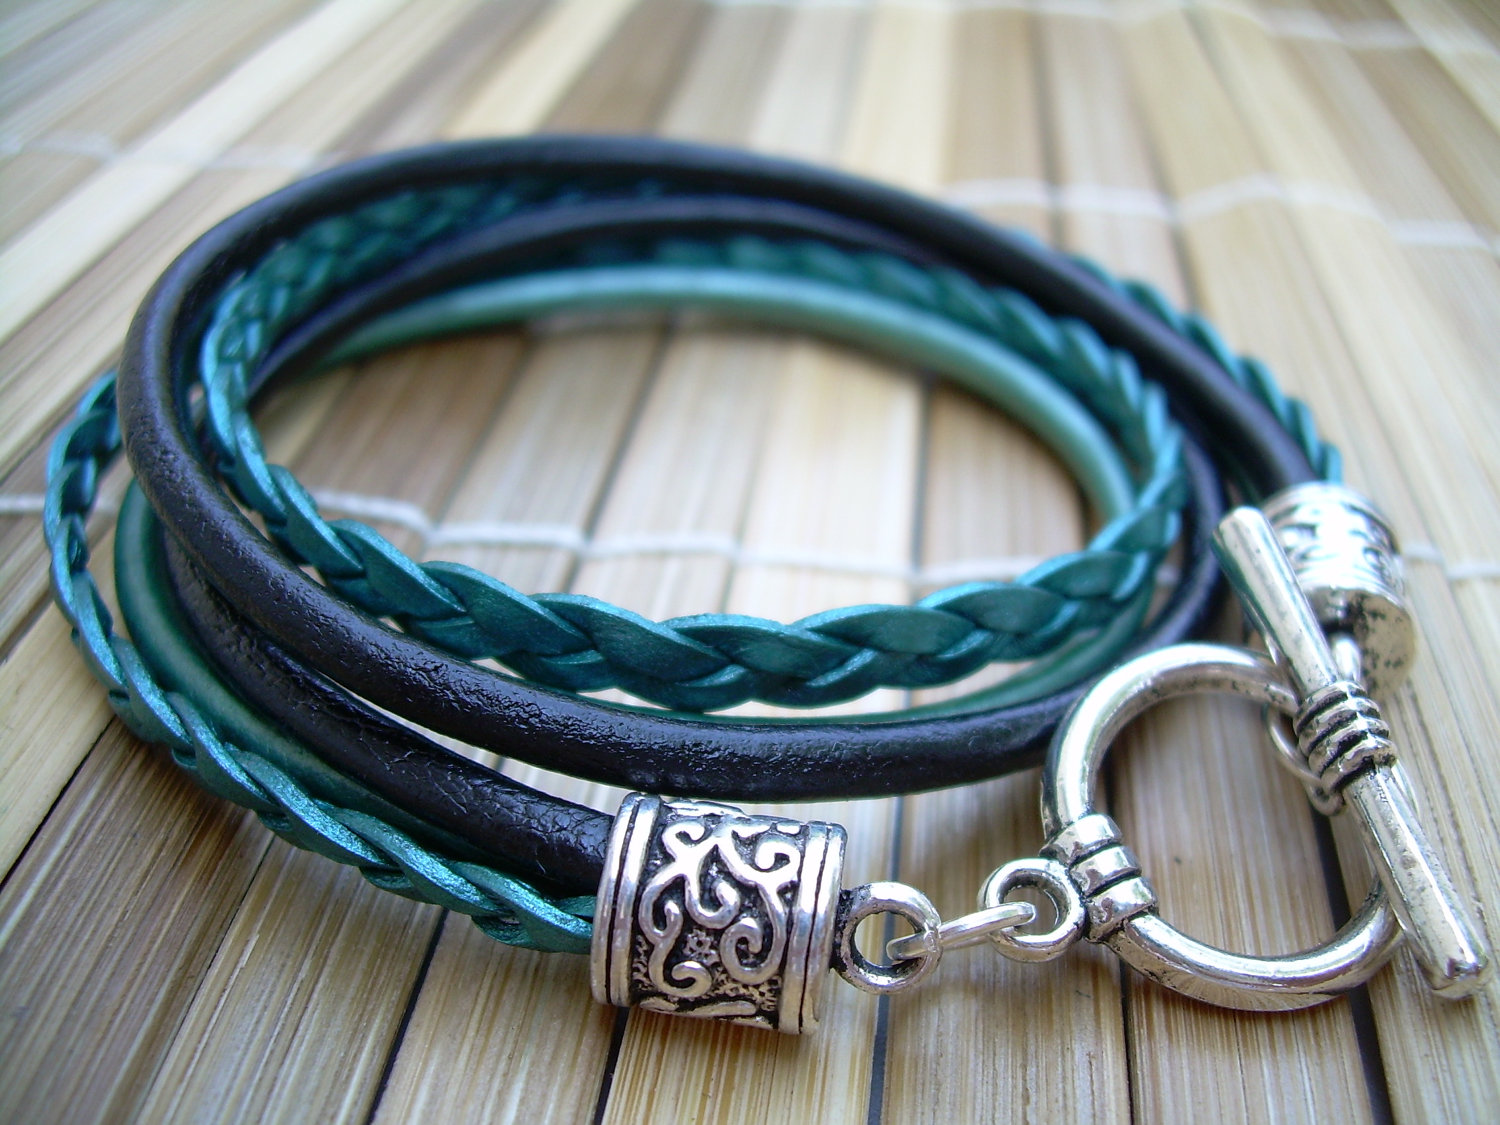 Womens Leather Bracelet Toggle Closure Metallic Teal And Black Double Wrap Jewelry Gift